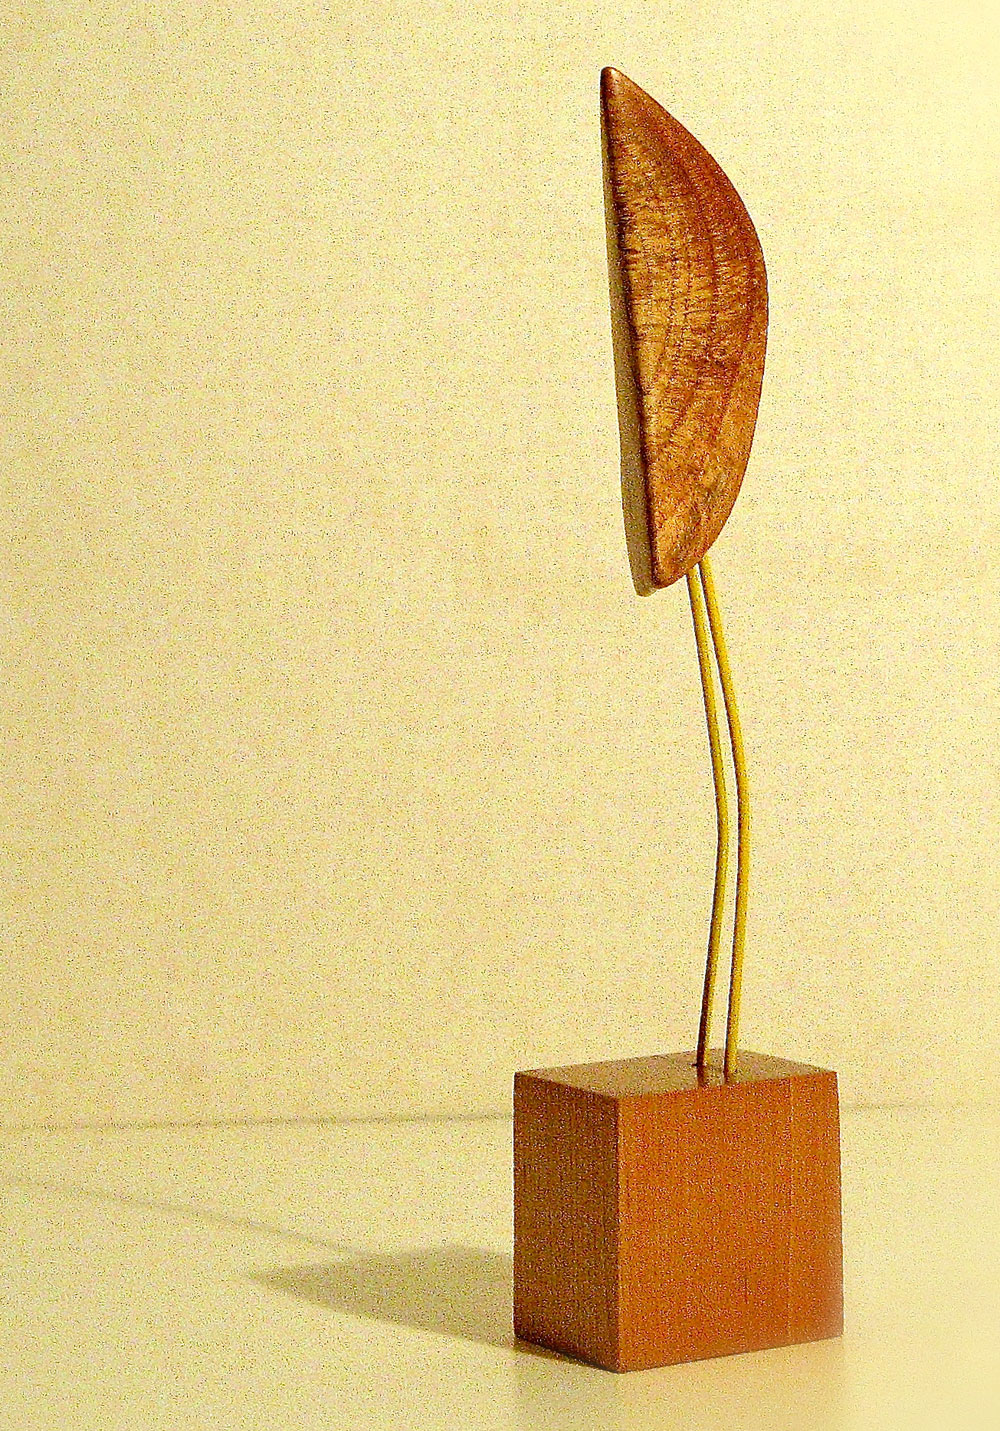 Knot Bird woodcarving sculpture